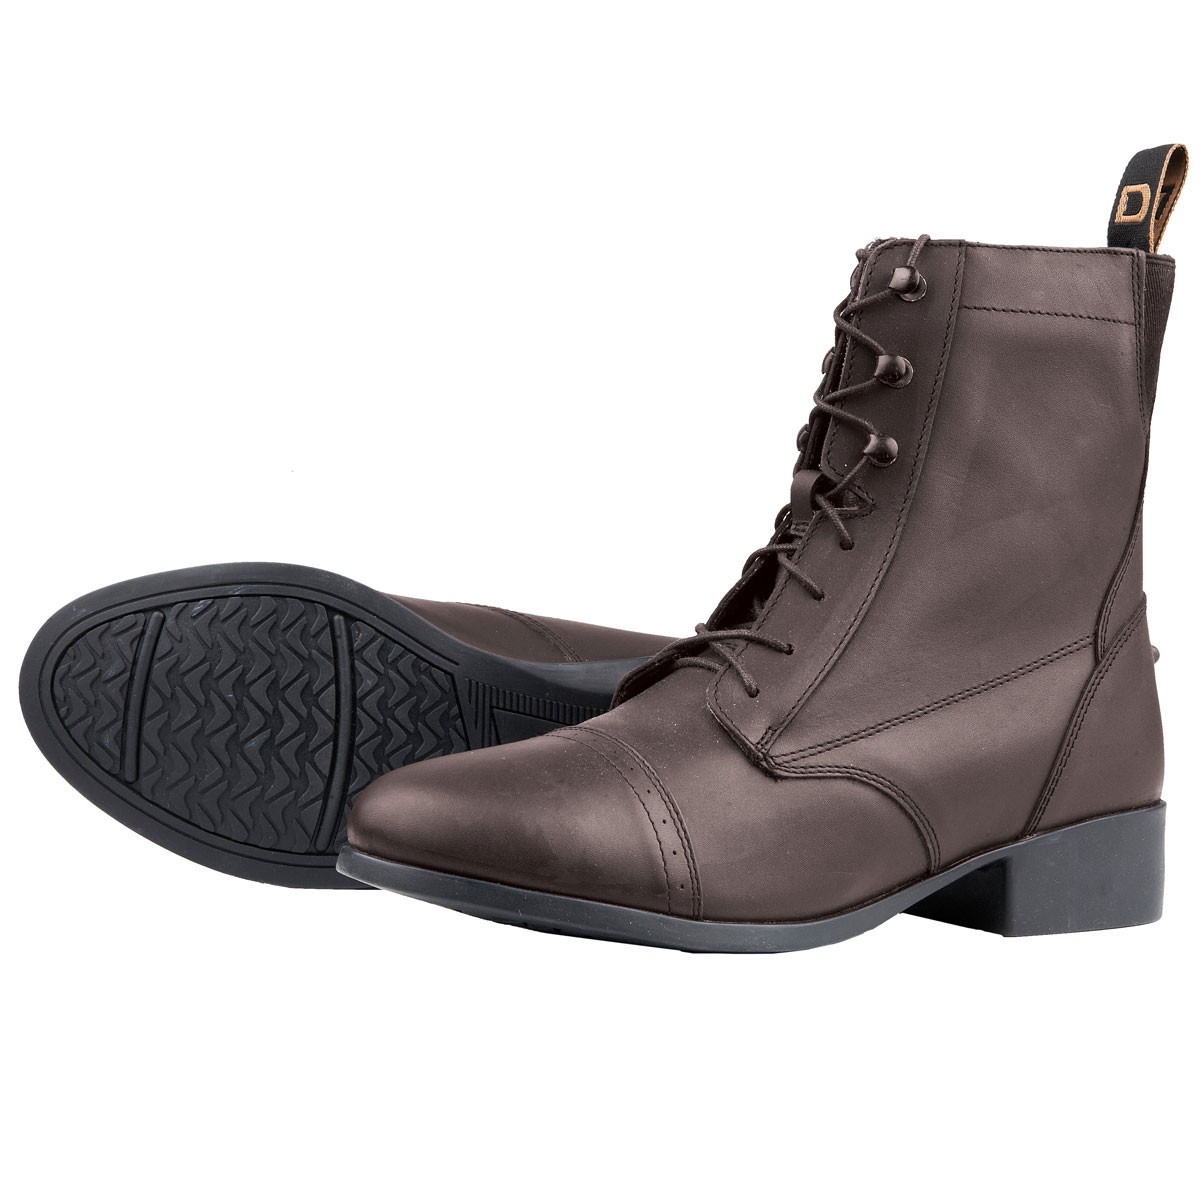 Dublin Elevation Laced Paddock Boots